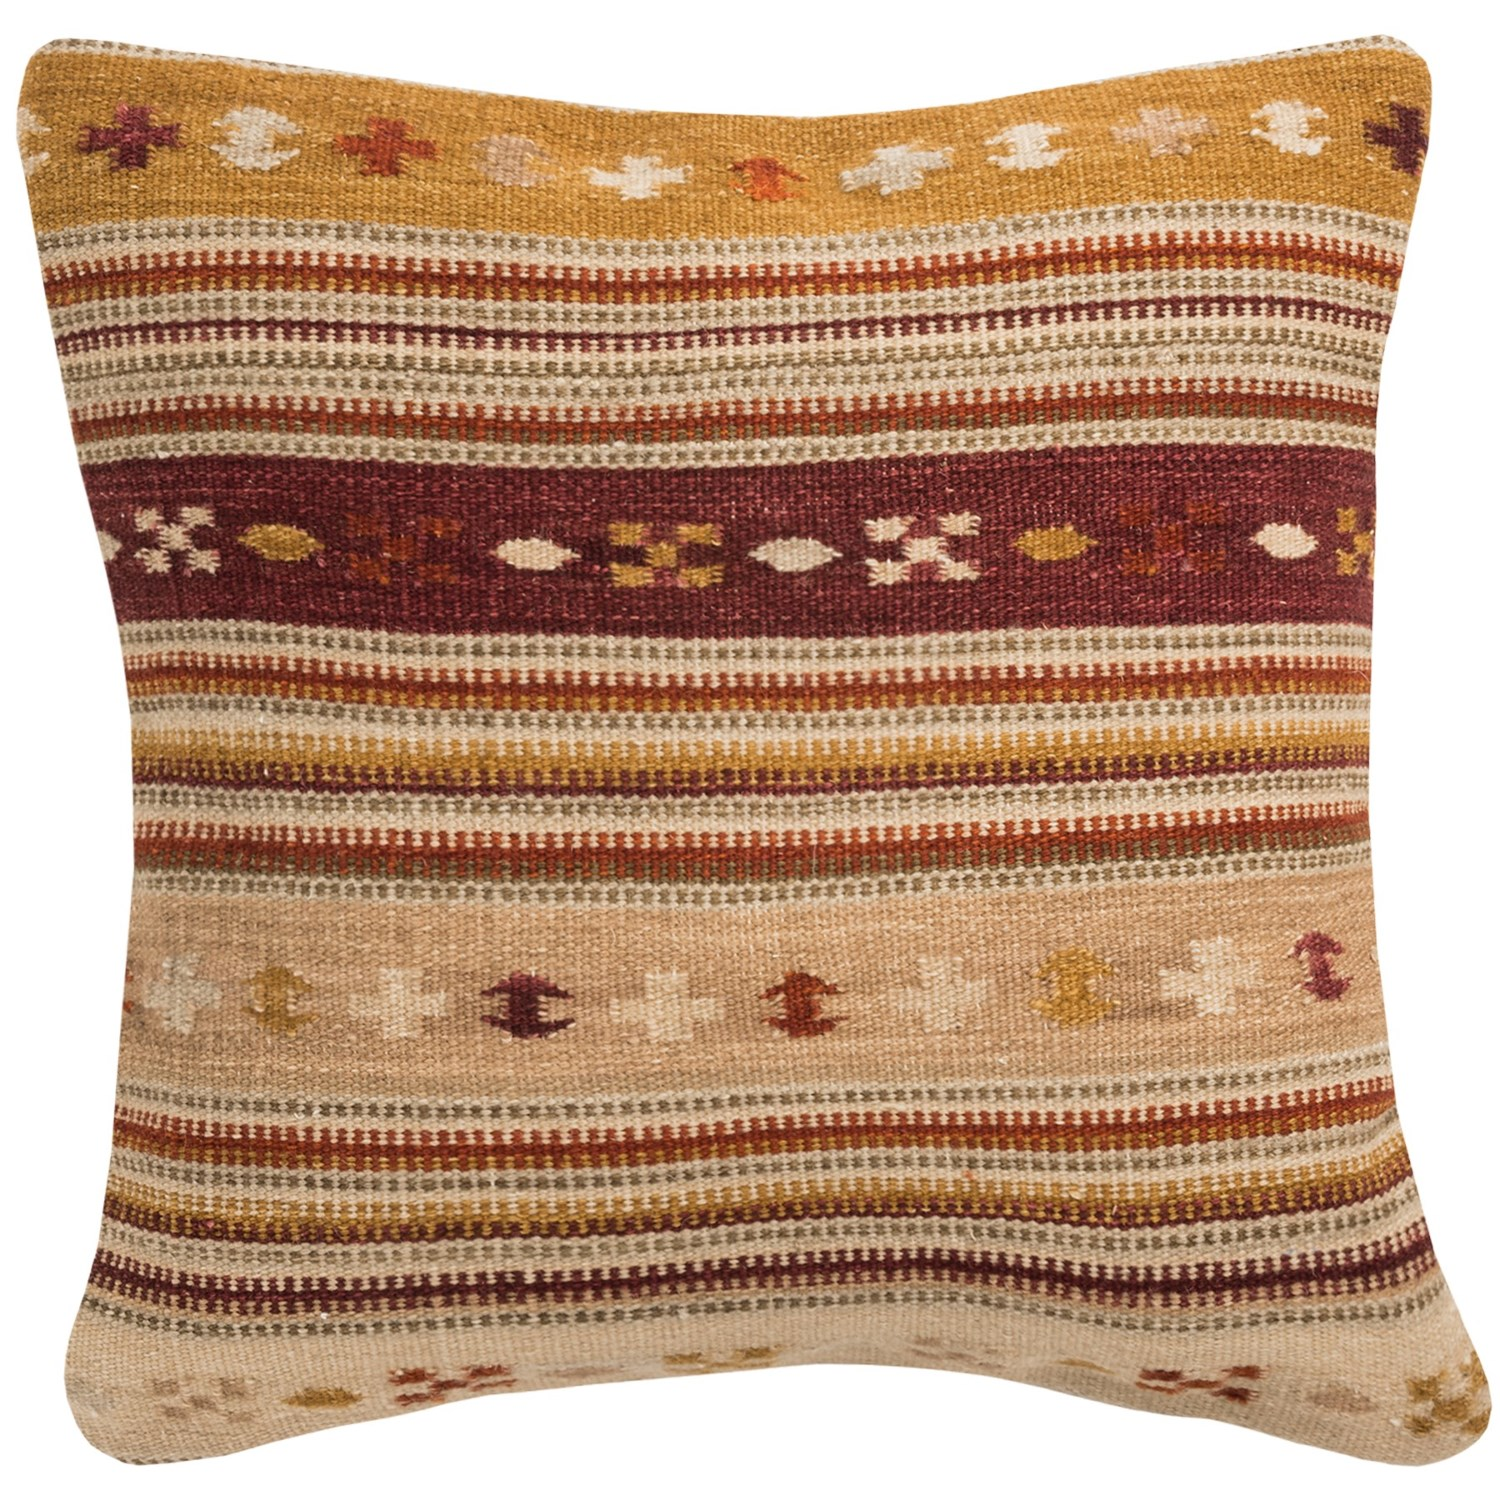 Nicole Miller Home Decorative Pillows : Nicole Miller Home Decorative Pillow Made In India Billingsblessingbags.org